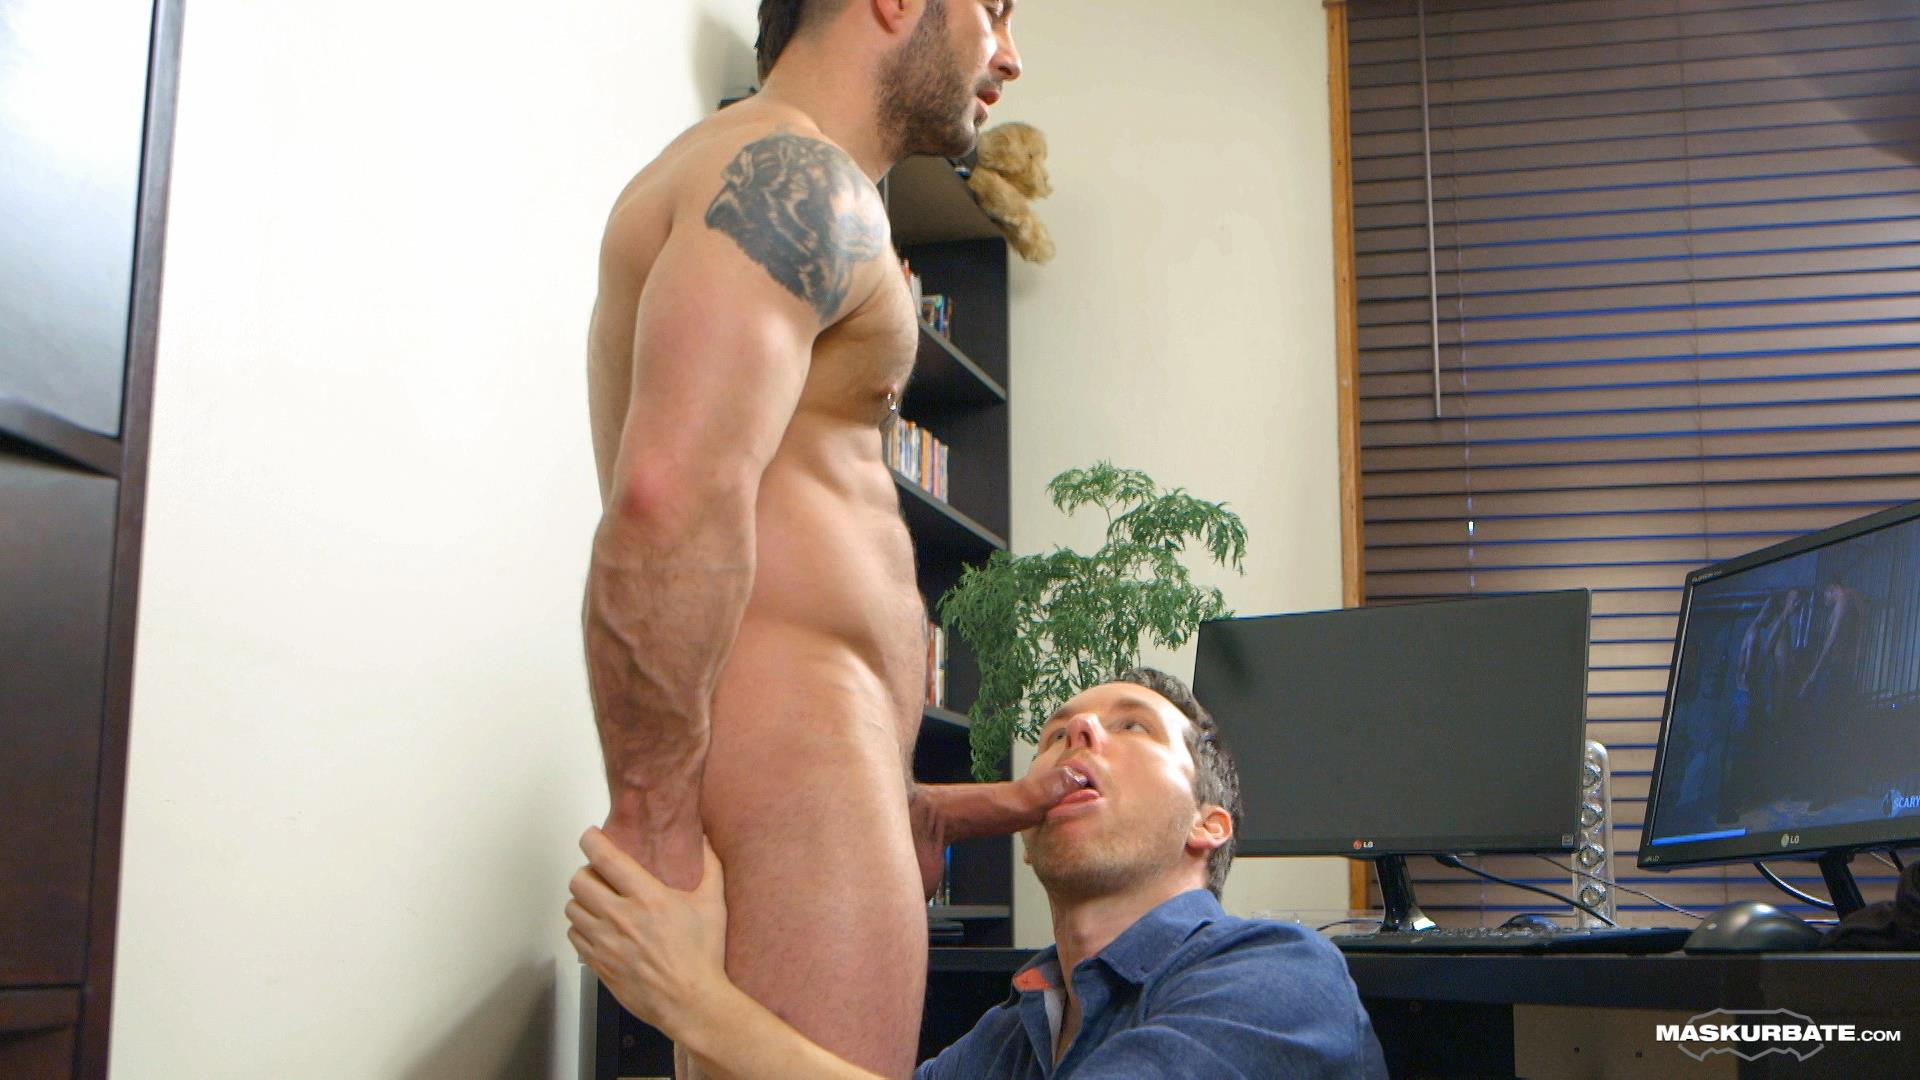 Maskurbate-Manuel-Deboxer-Gets-His-Big-Uncut-Cock-Sucked-Amateur-Gay-Porn-08 Manuel Deboxer Gets His Big Uncut Cock Sucked Off